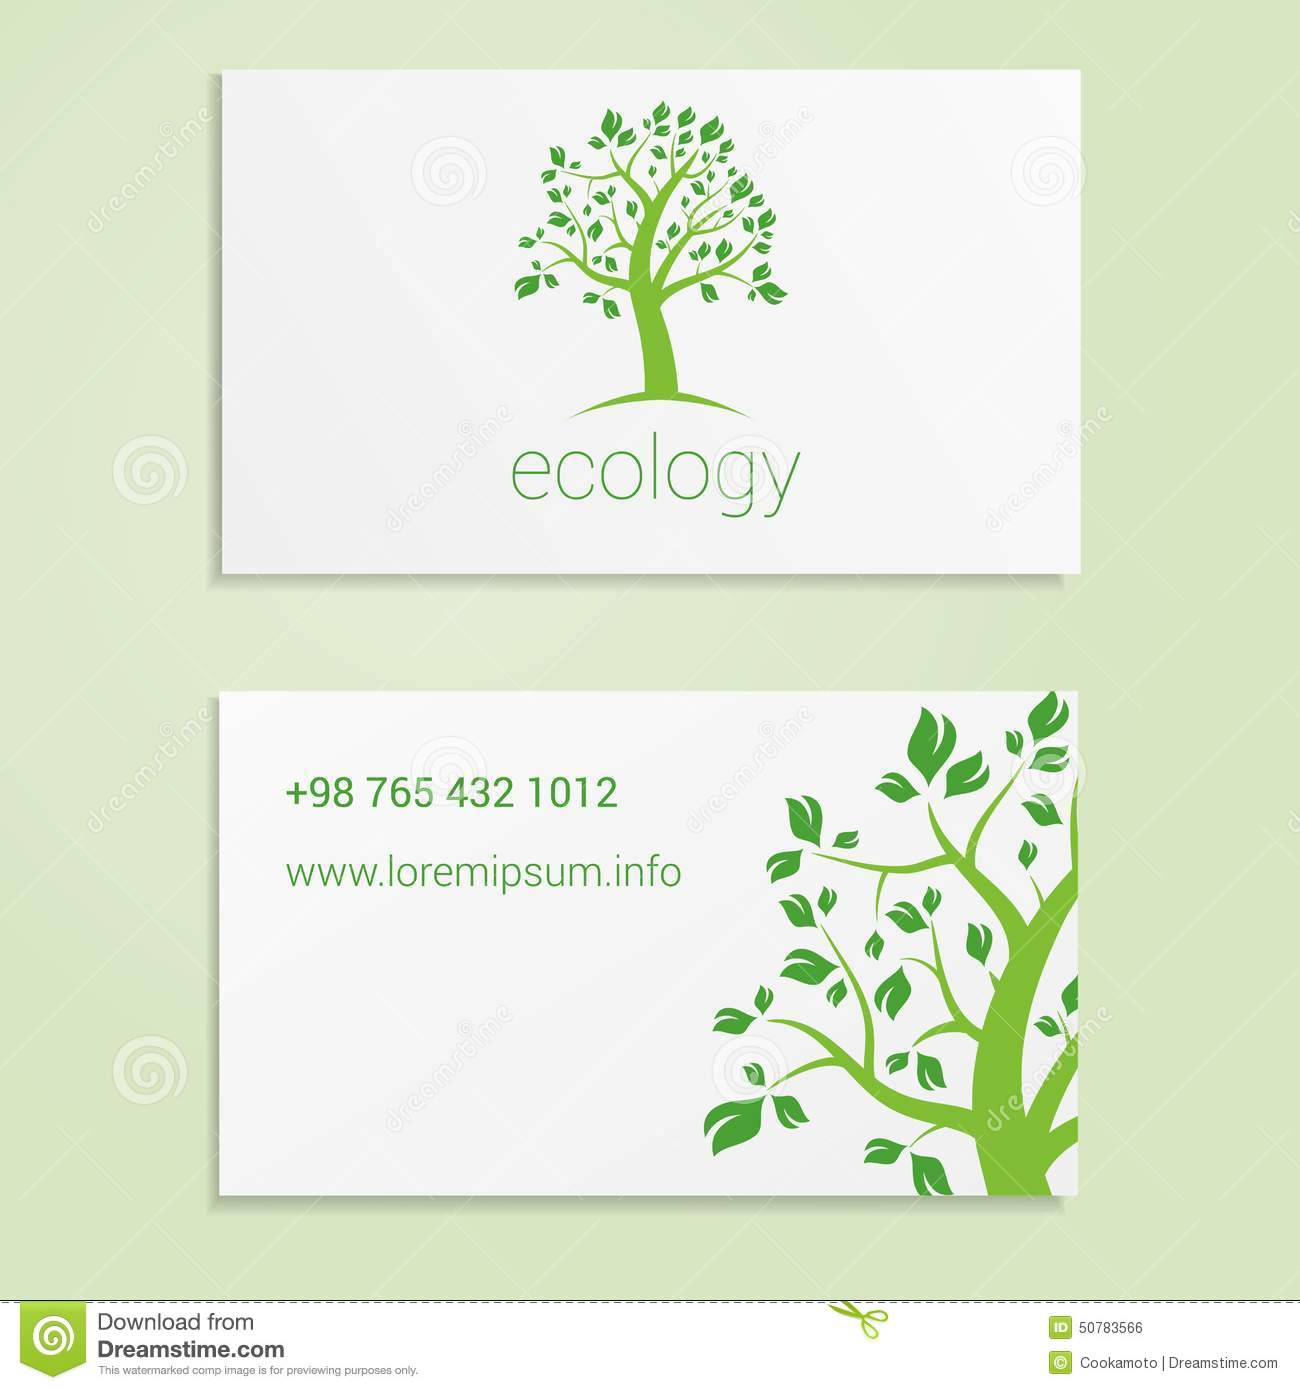 ecological or eco energy company business card stock vector image 50783566. Black Bedroom Furniture Sets. Home Design Ideas